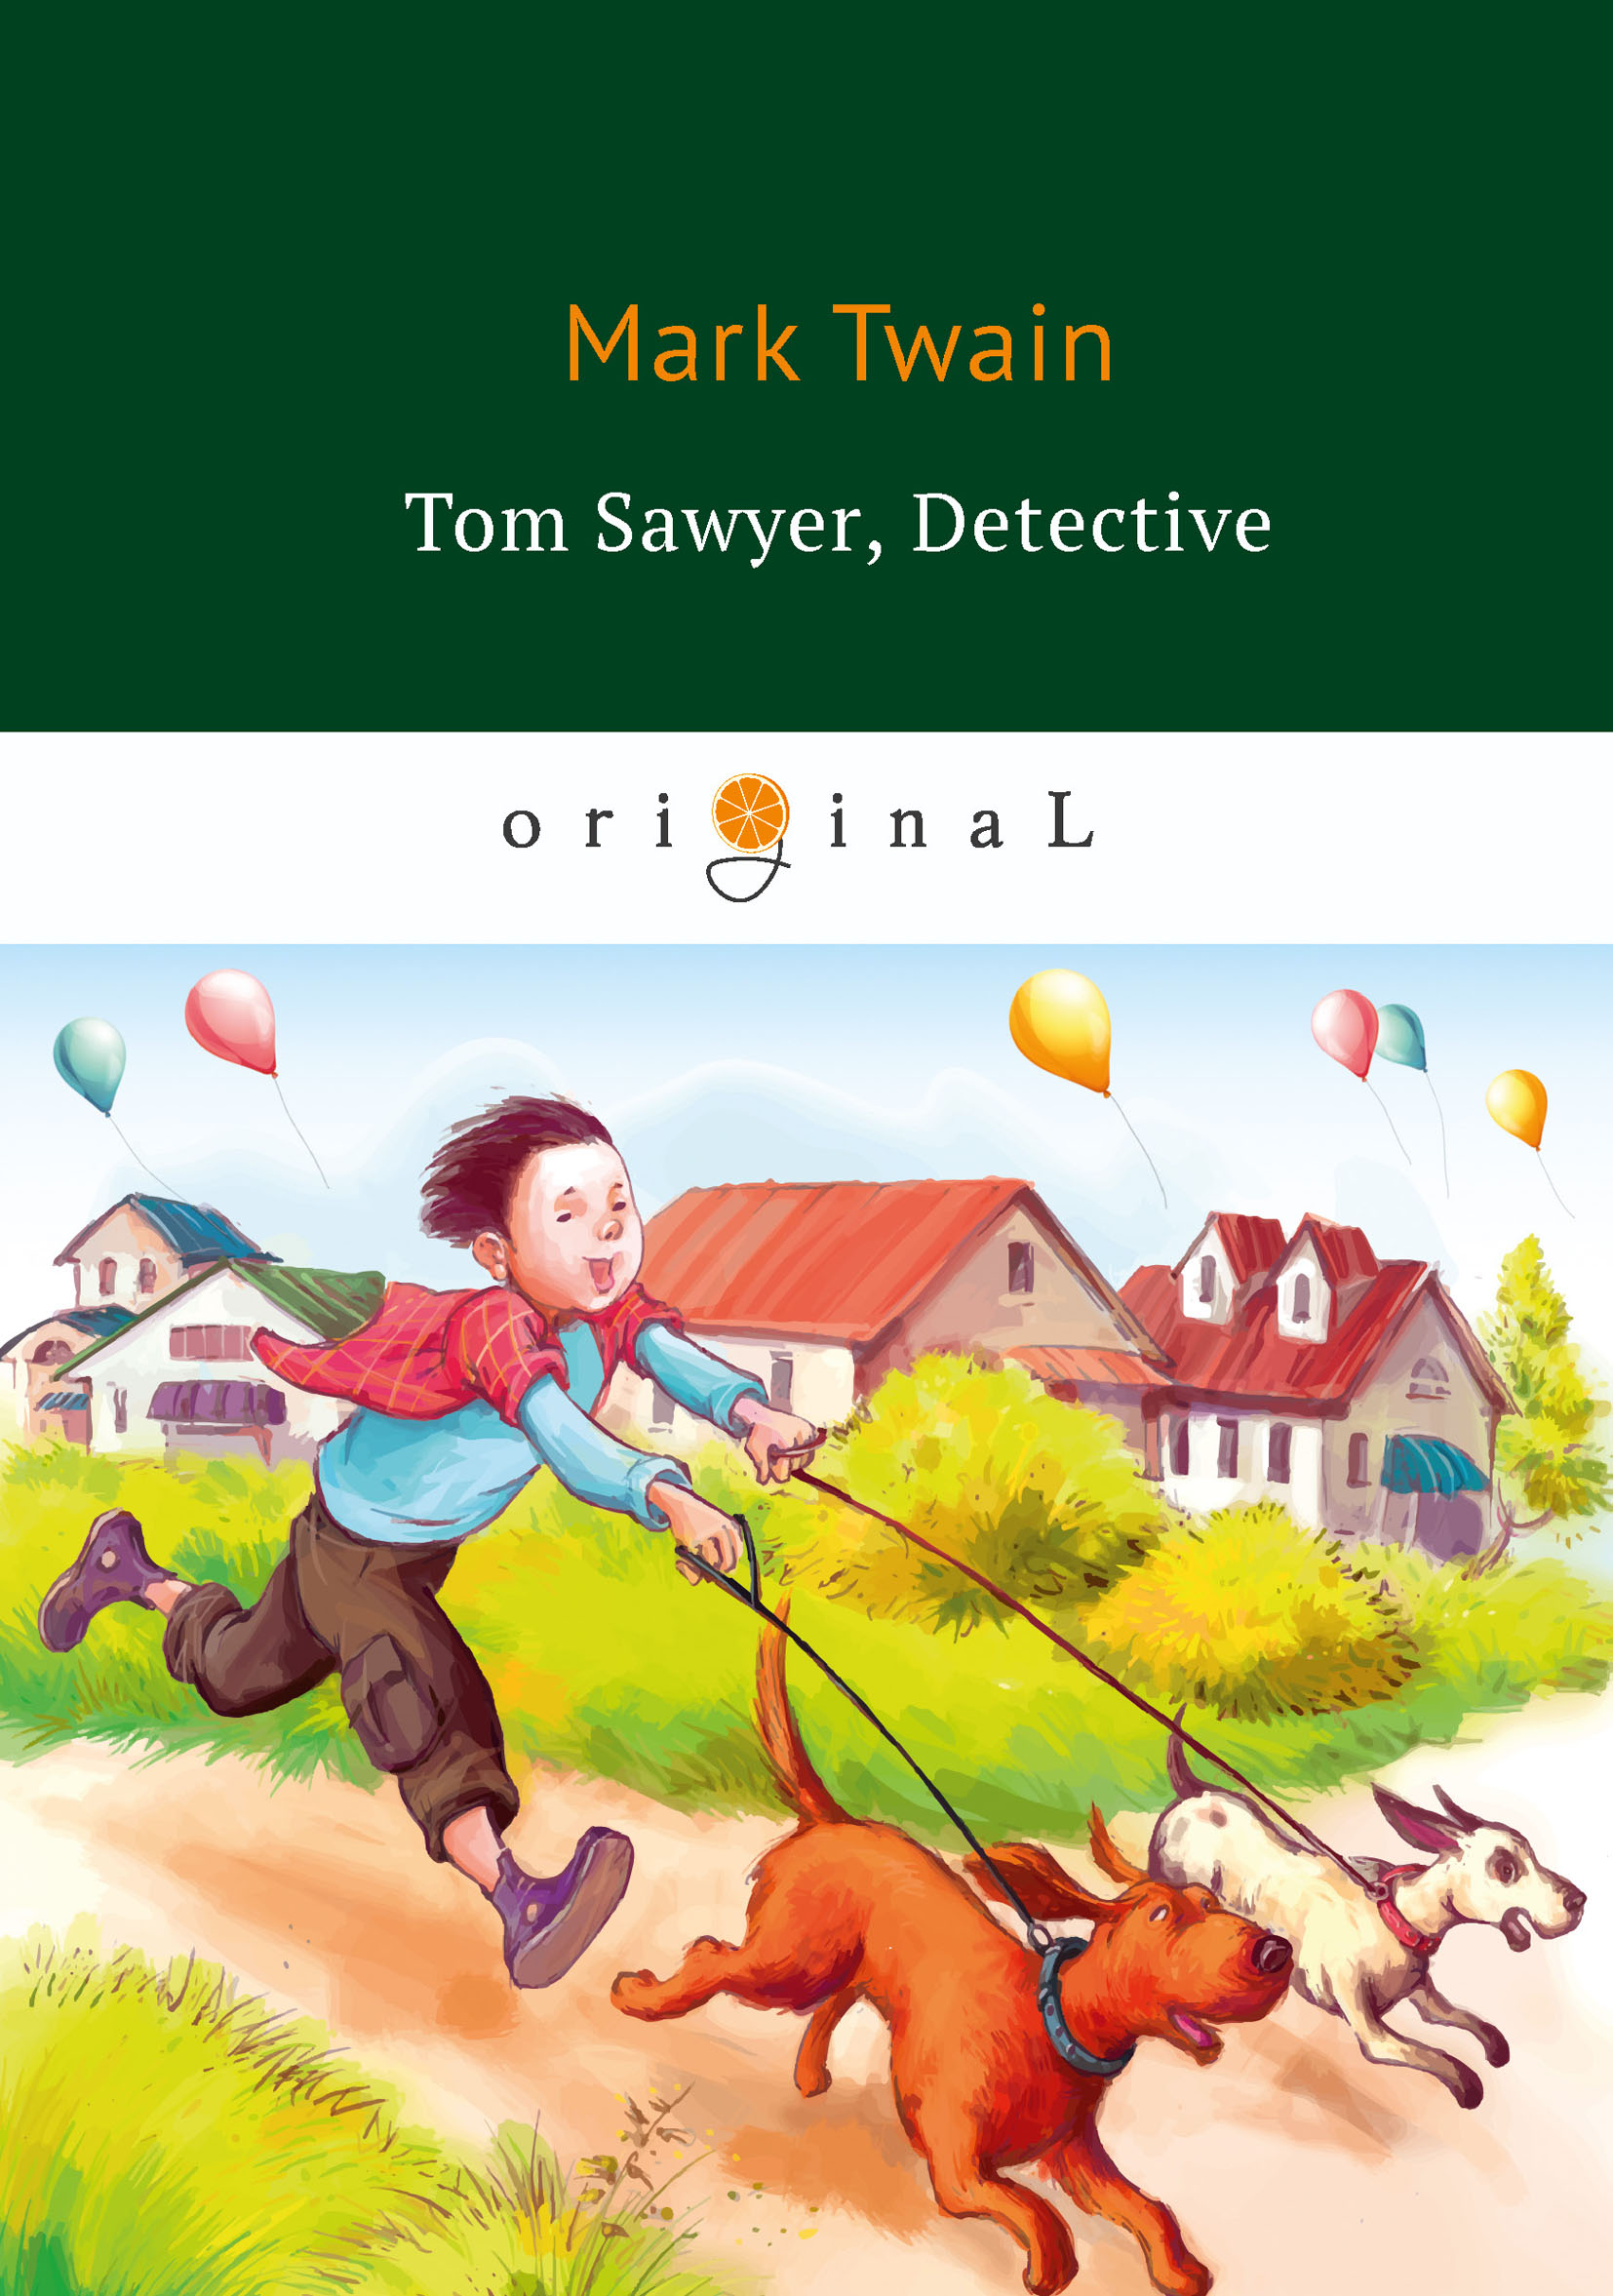 M. Twain Tom Sawyer, Detective twain m tom sawyer abroad tom sawyer detective том сойер за границей тос сойер сыщик